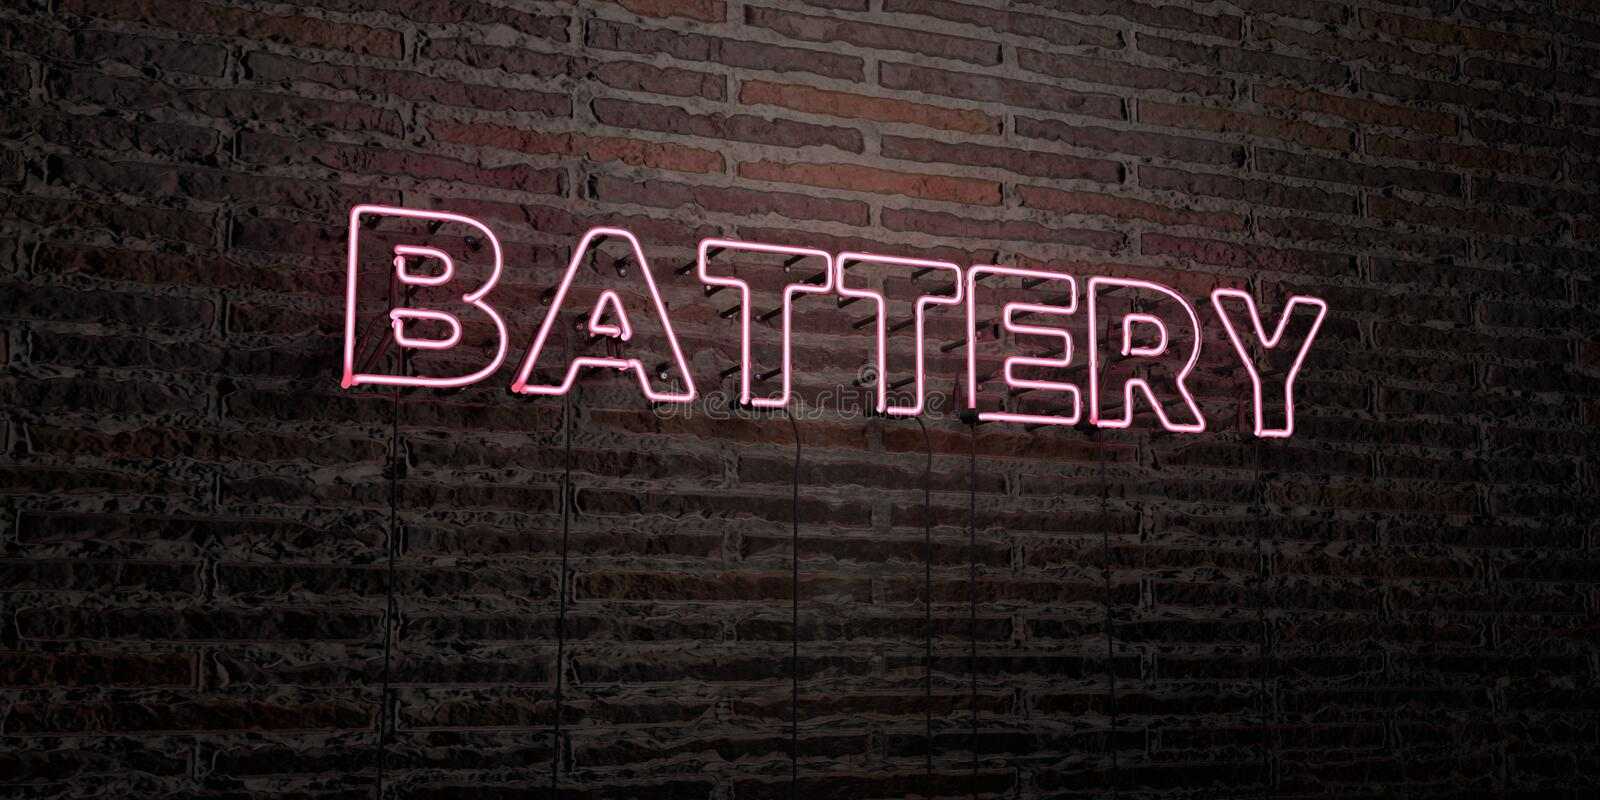 BATTERY -Realistic Neon Sign on Brick Wall background - 3D rendered royalty free stock image stock illustration